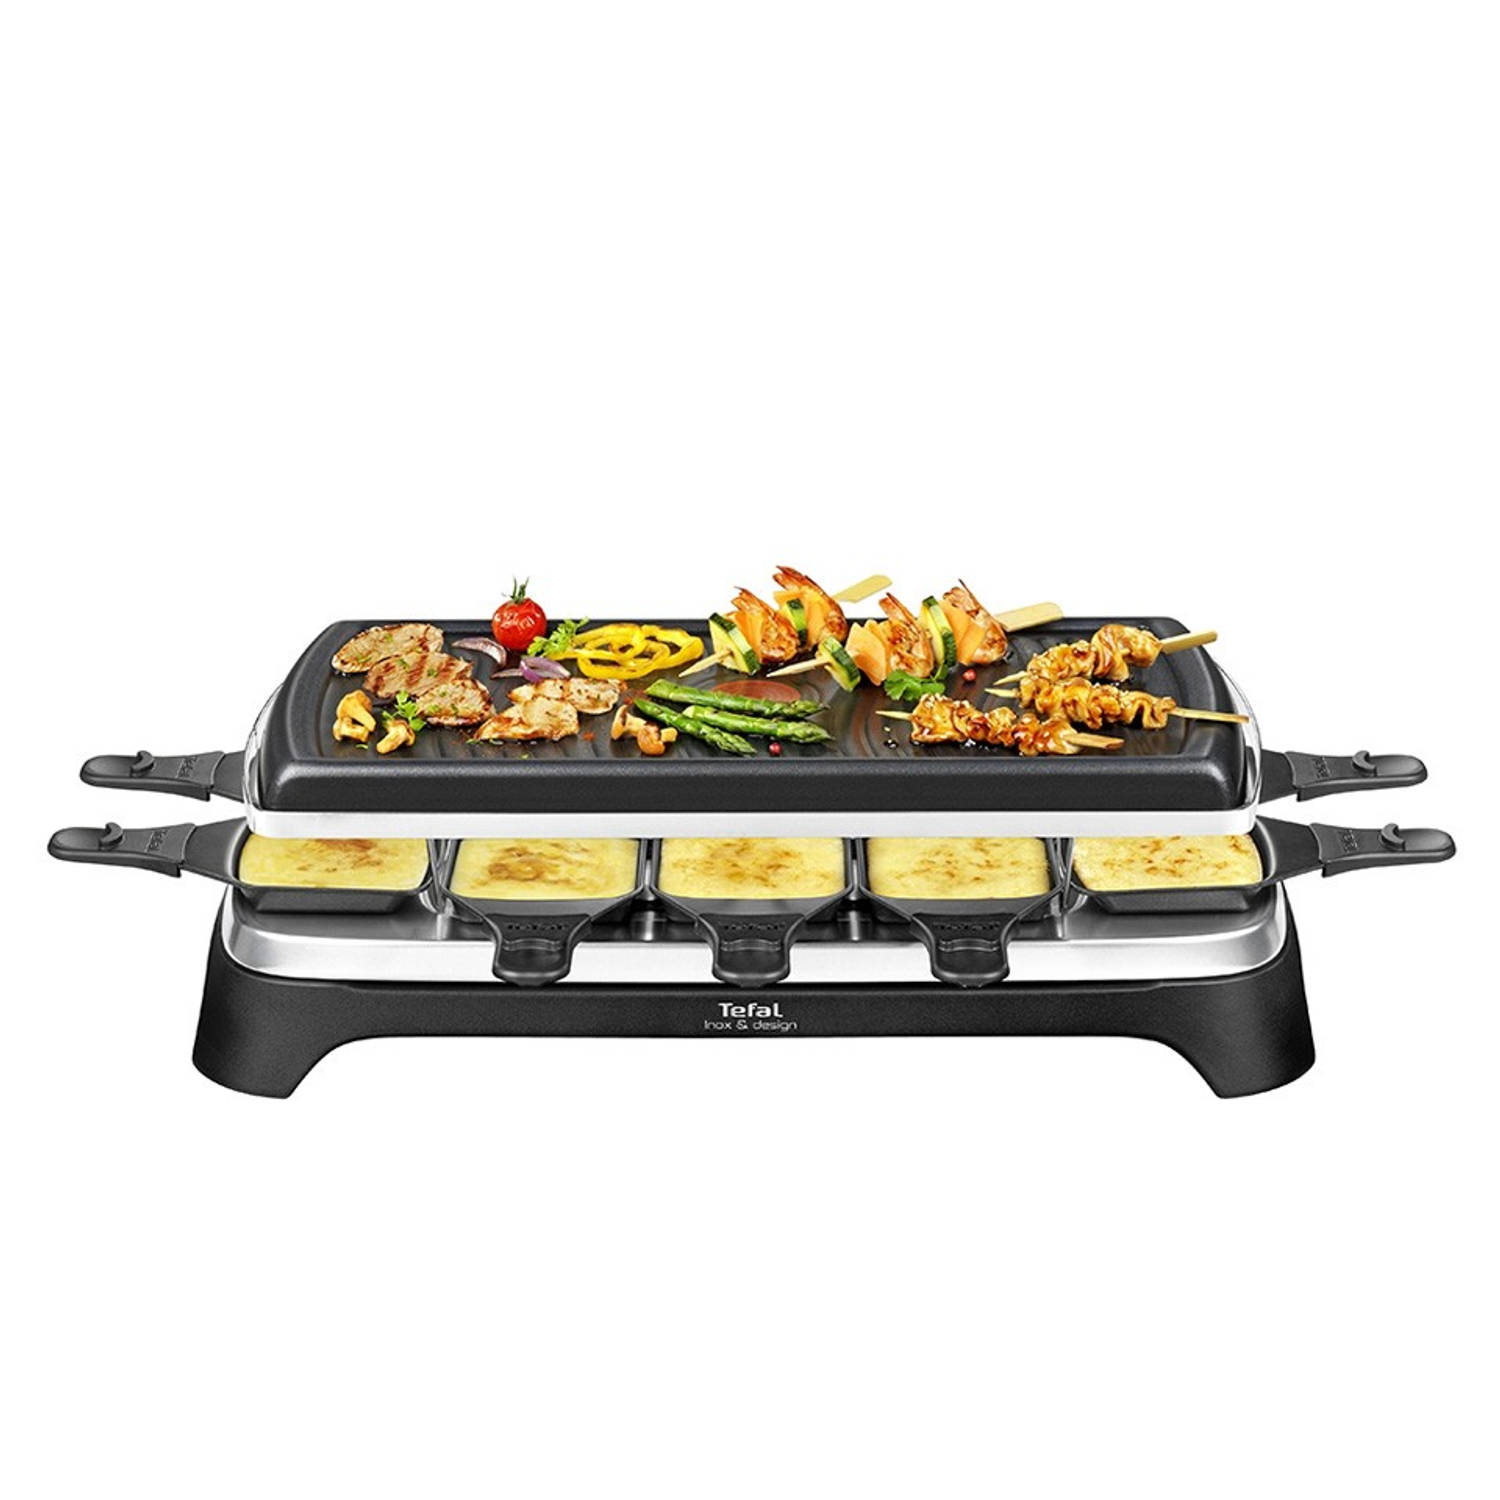 Tefal gourmette/grillplaat 10 RE4588